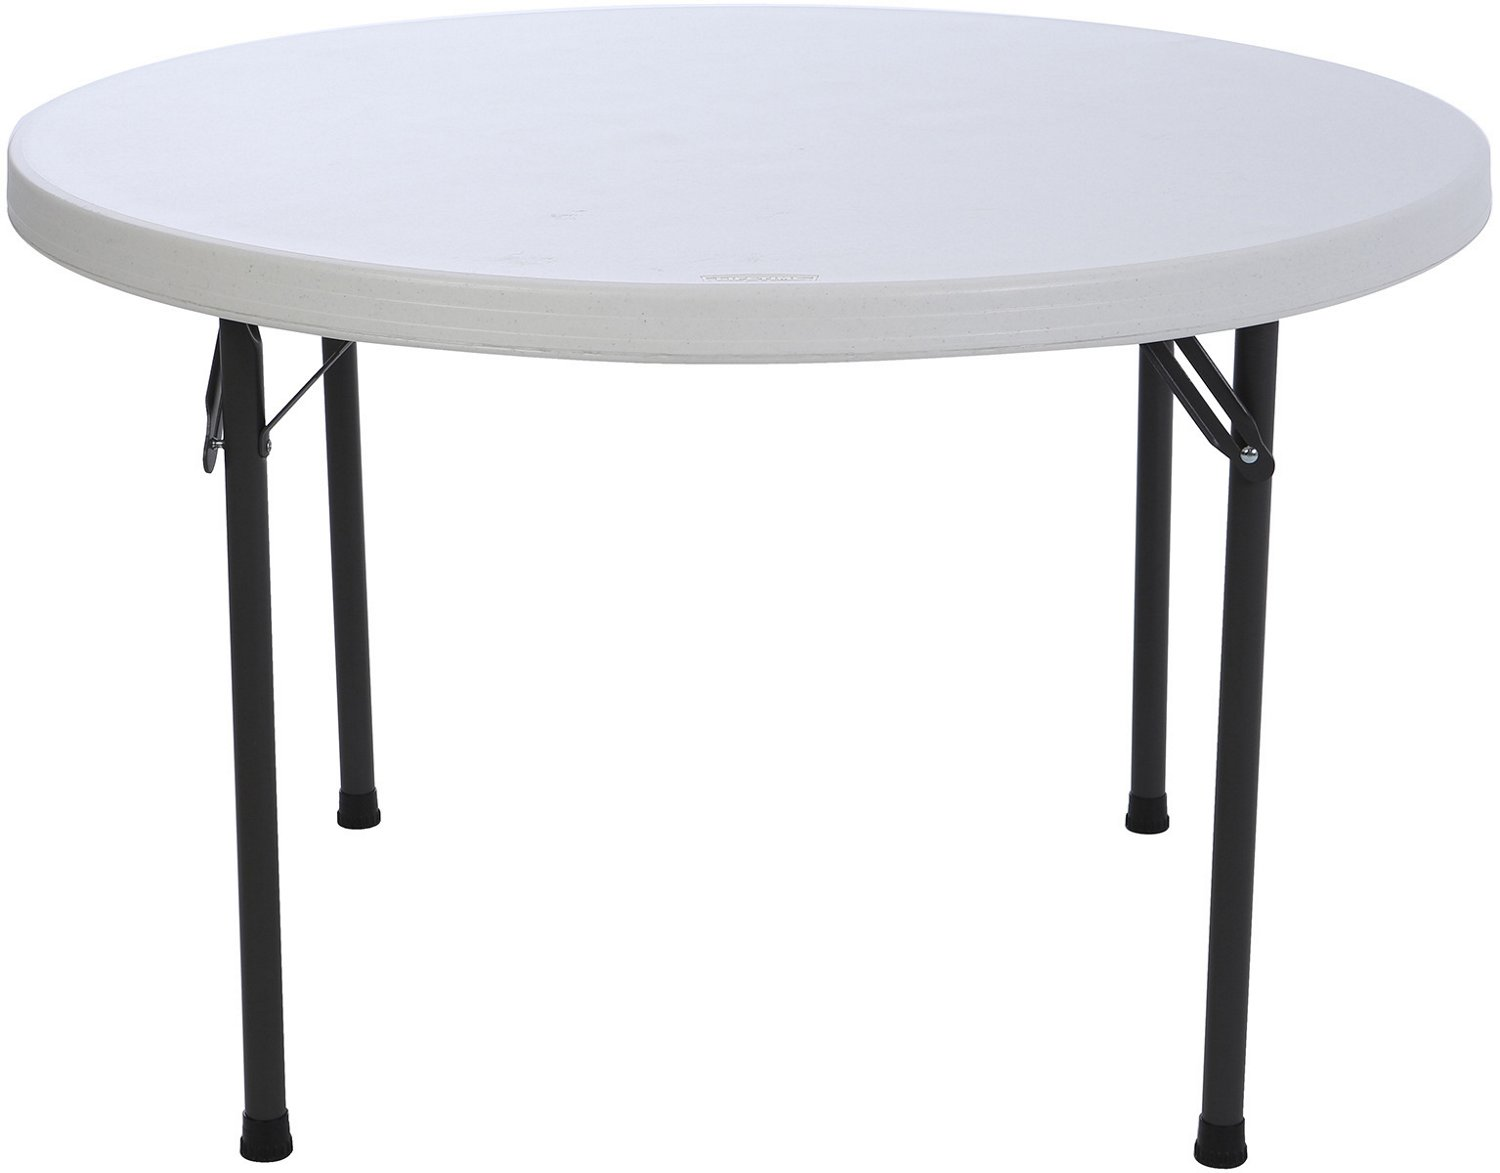 Lifetime 46 in Round Commercial Folding Table - view number 1